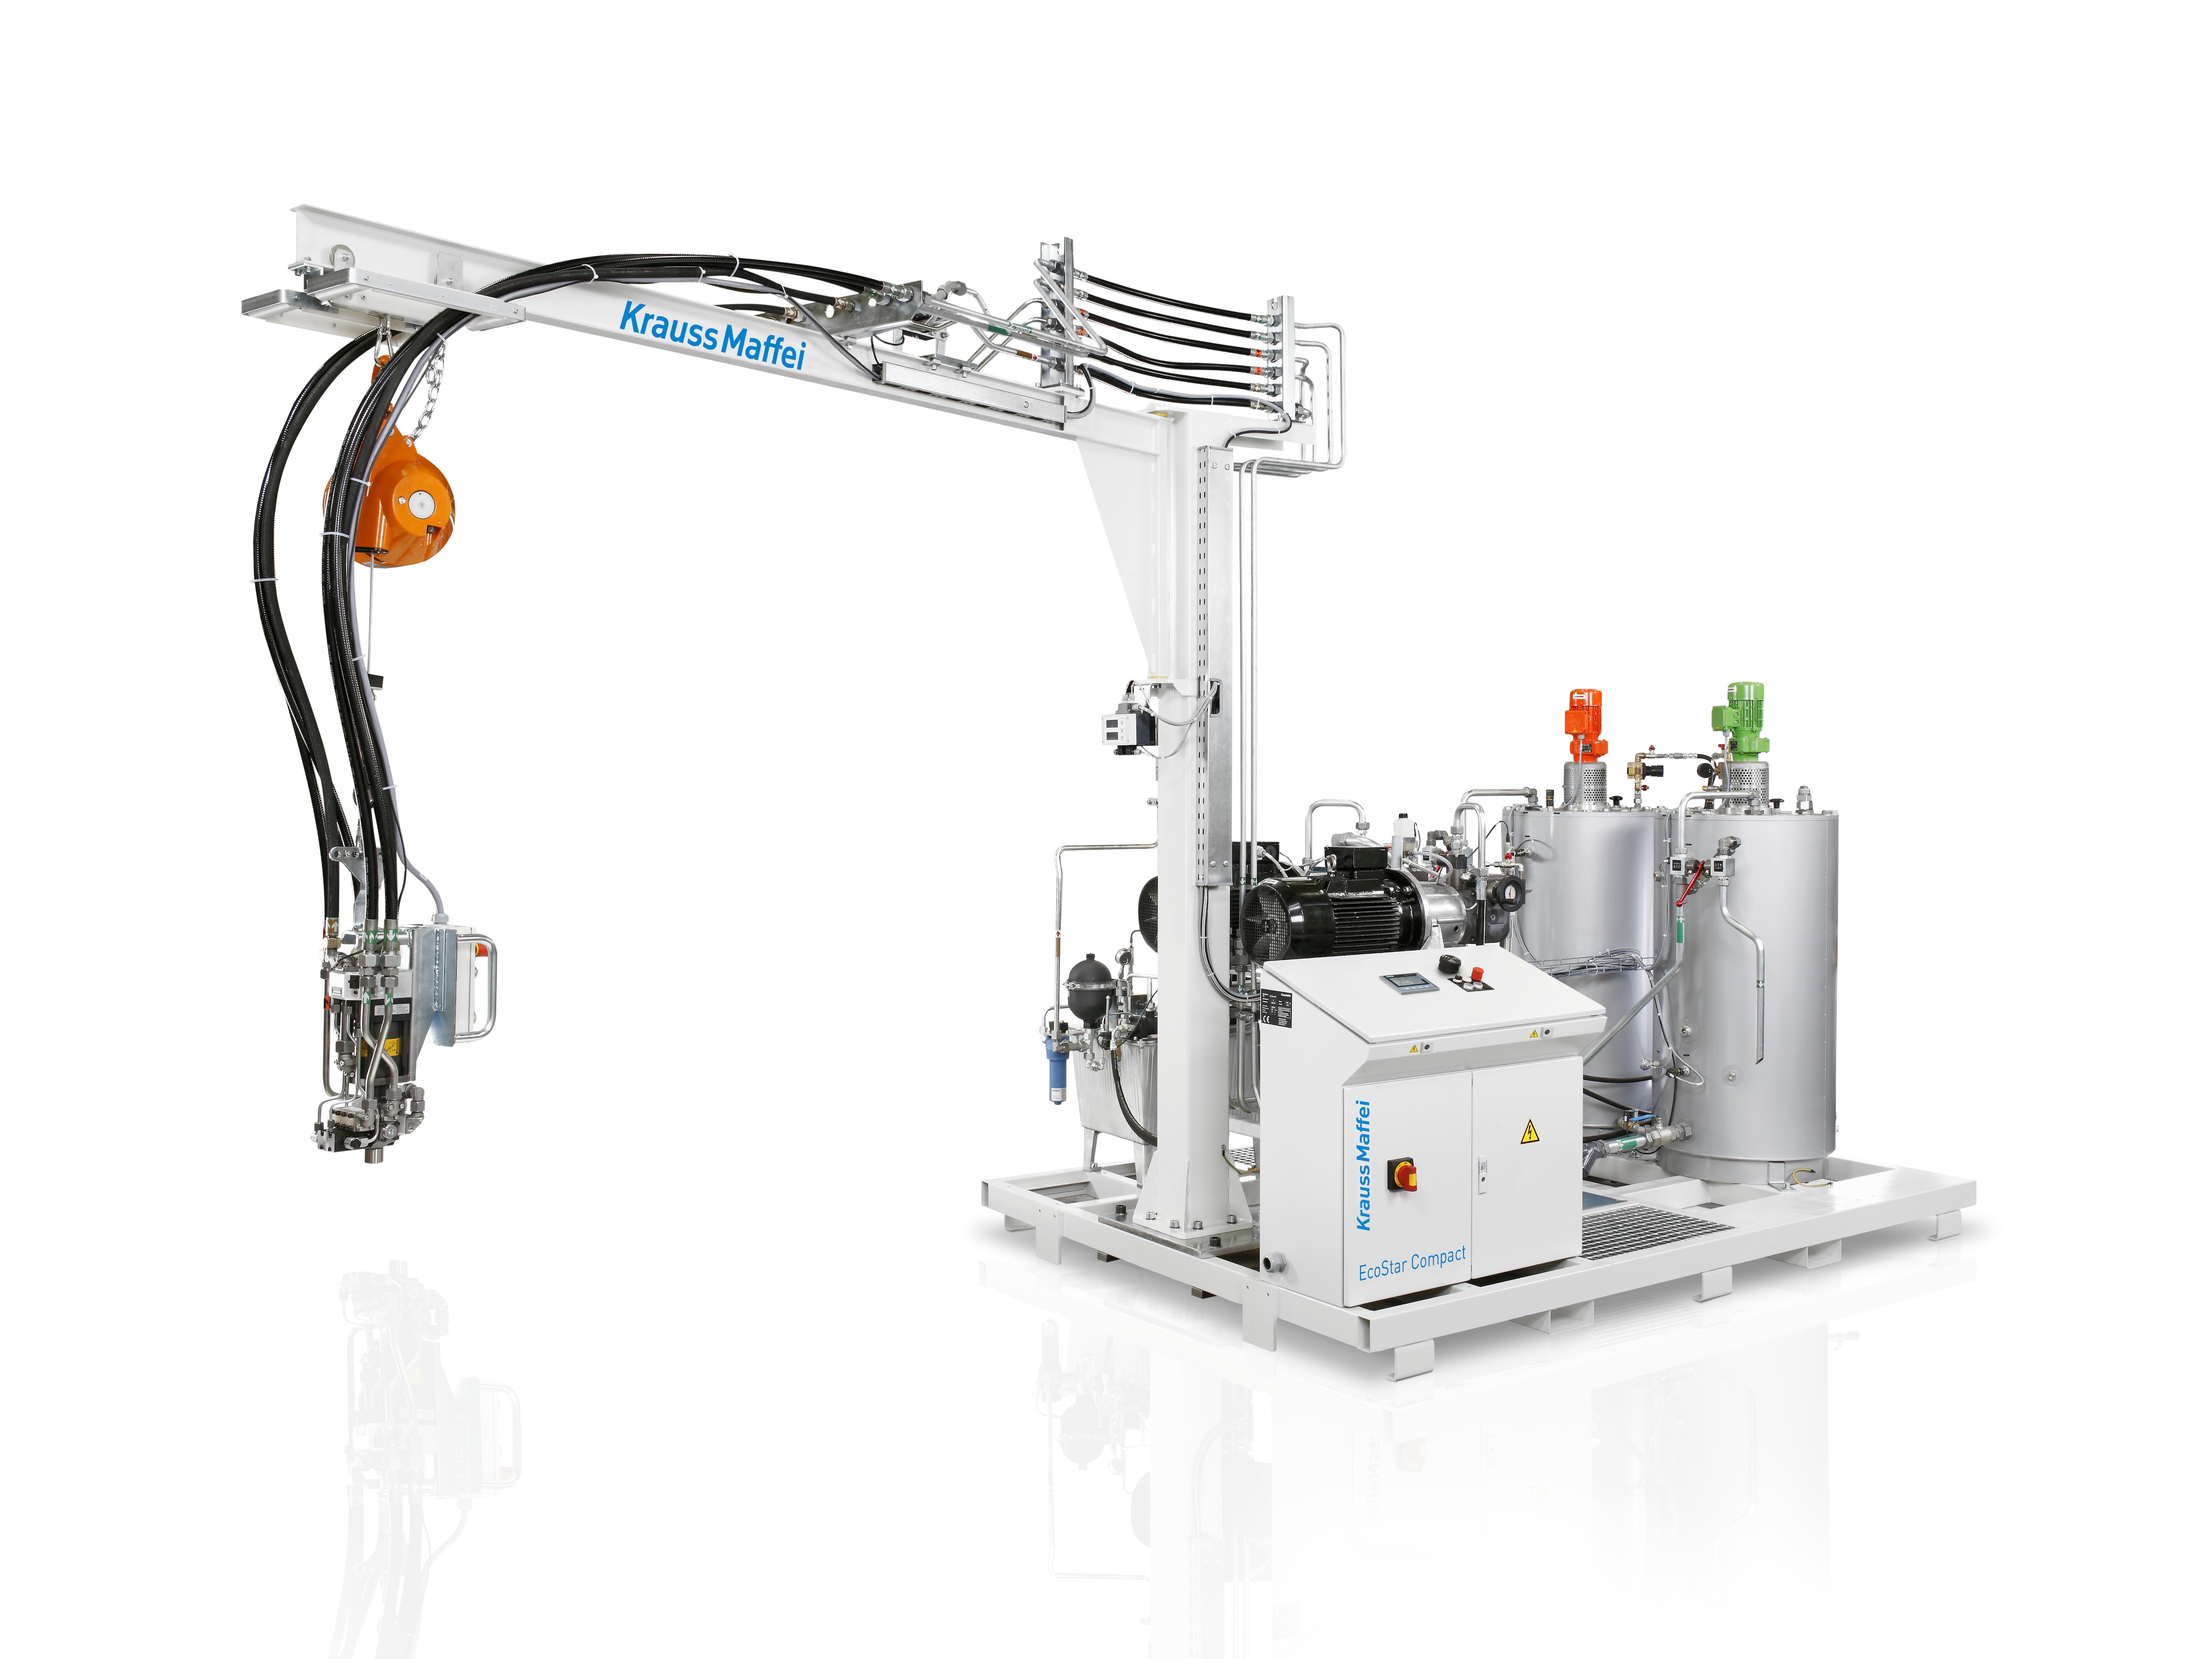 The EcoStar Compact offers PU processing technology for limited budgets. (Source: KraussMaffei)